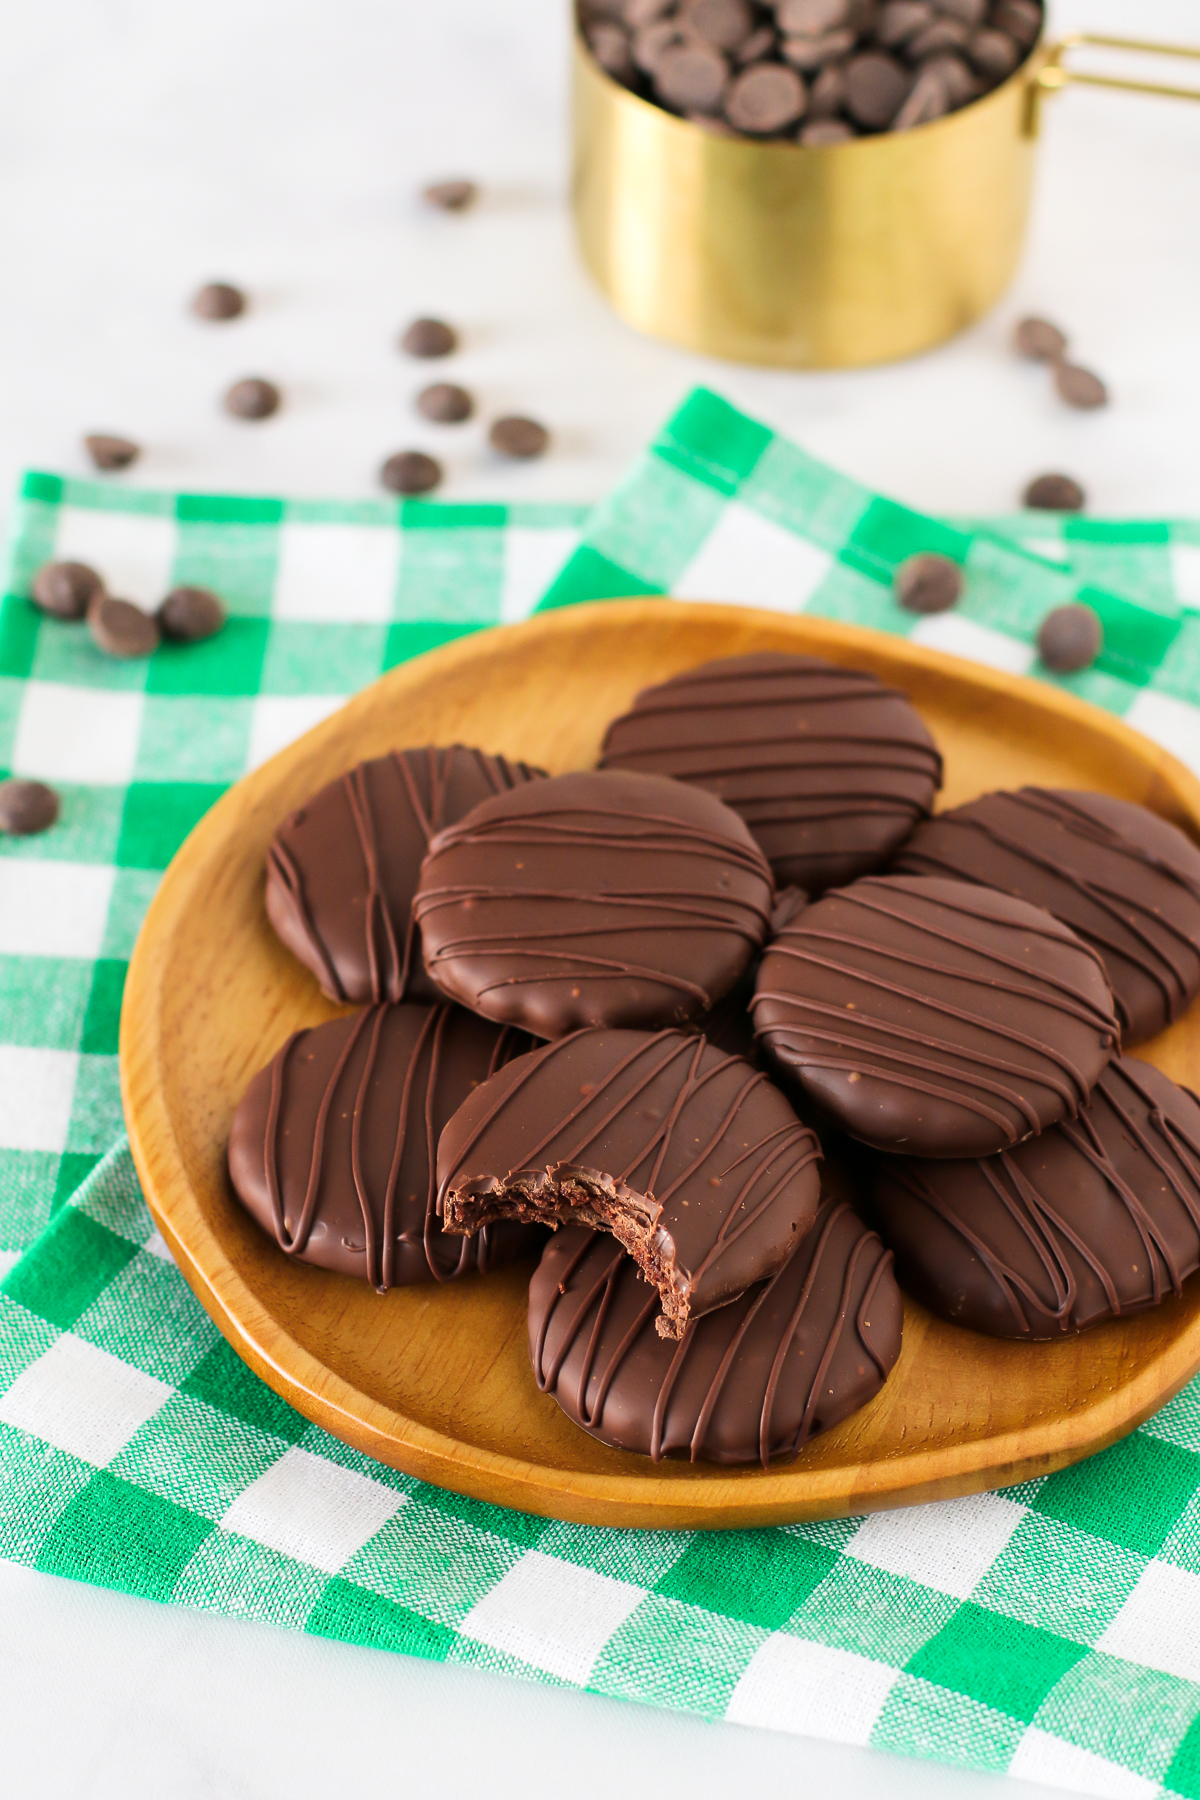 Gluten Free Vegan Thin Mint Cookies. You know you want a bite of one of these chocolate-covered chocolate mint cookies!